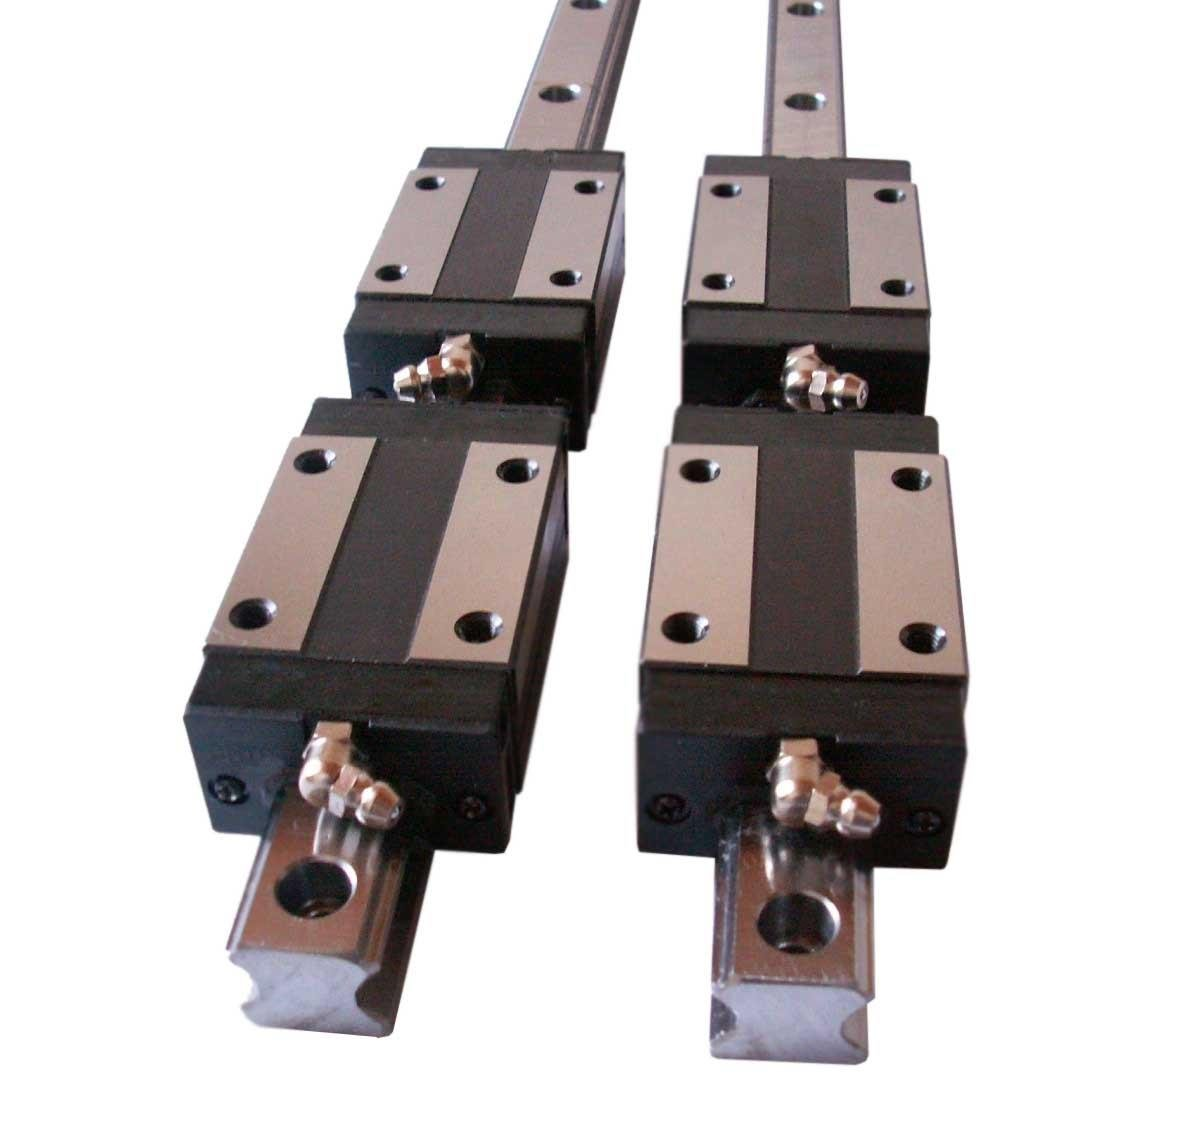 Joomen CNC Set 20-400mm 2x Linear Guideway Rail 4x Square type carriage bearing block